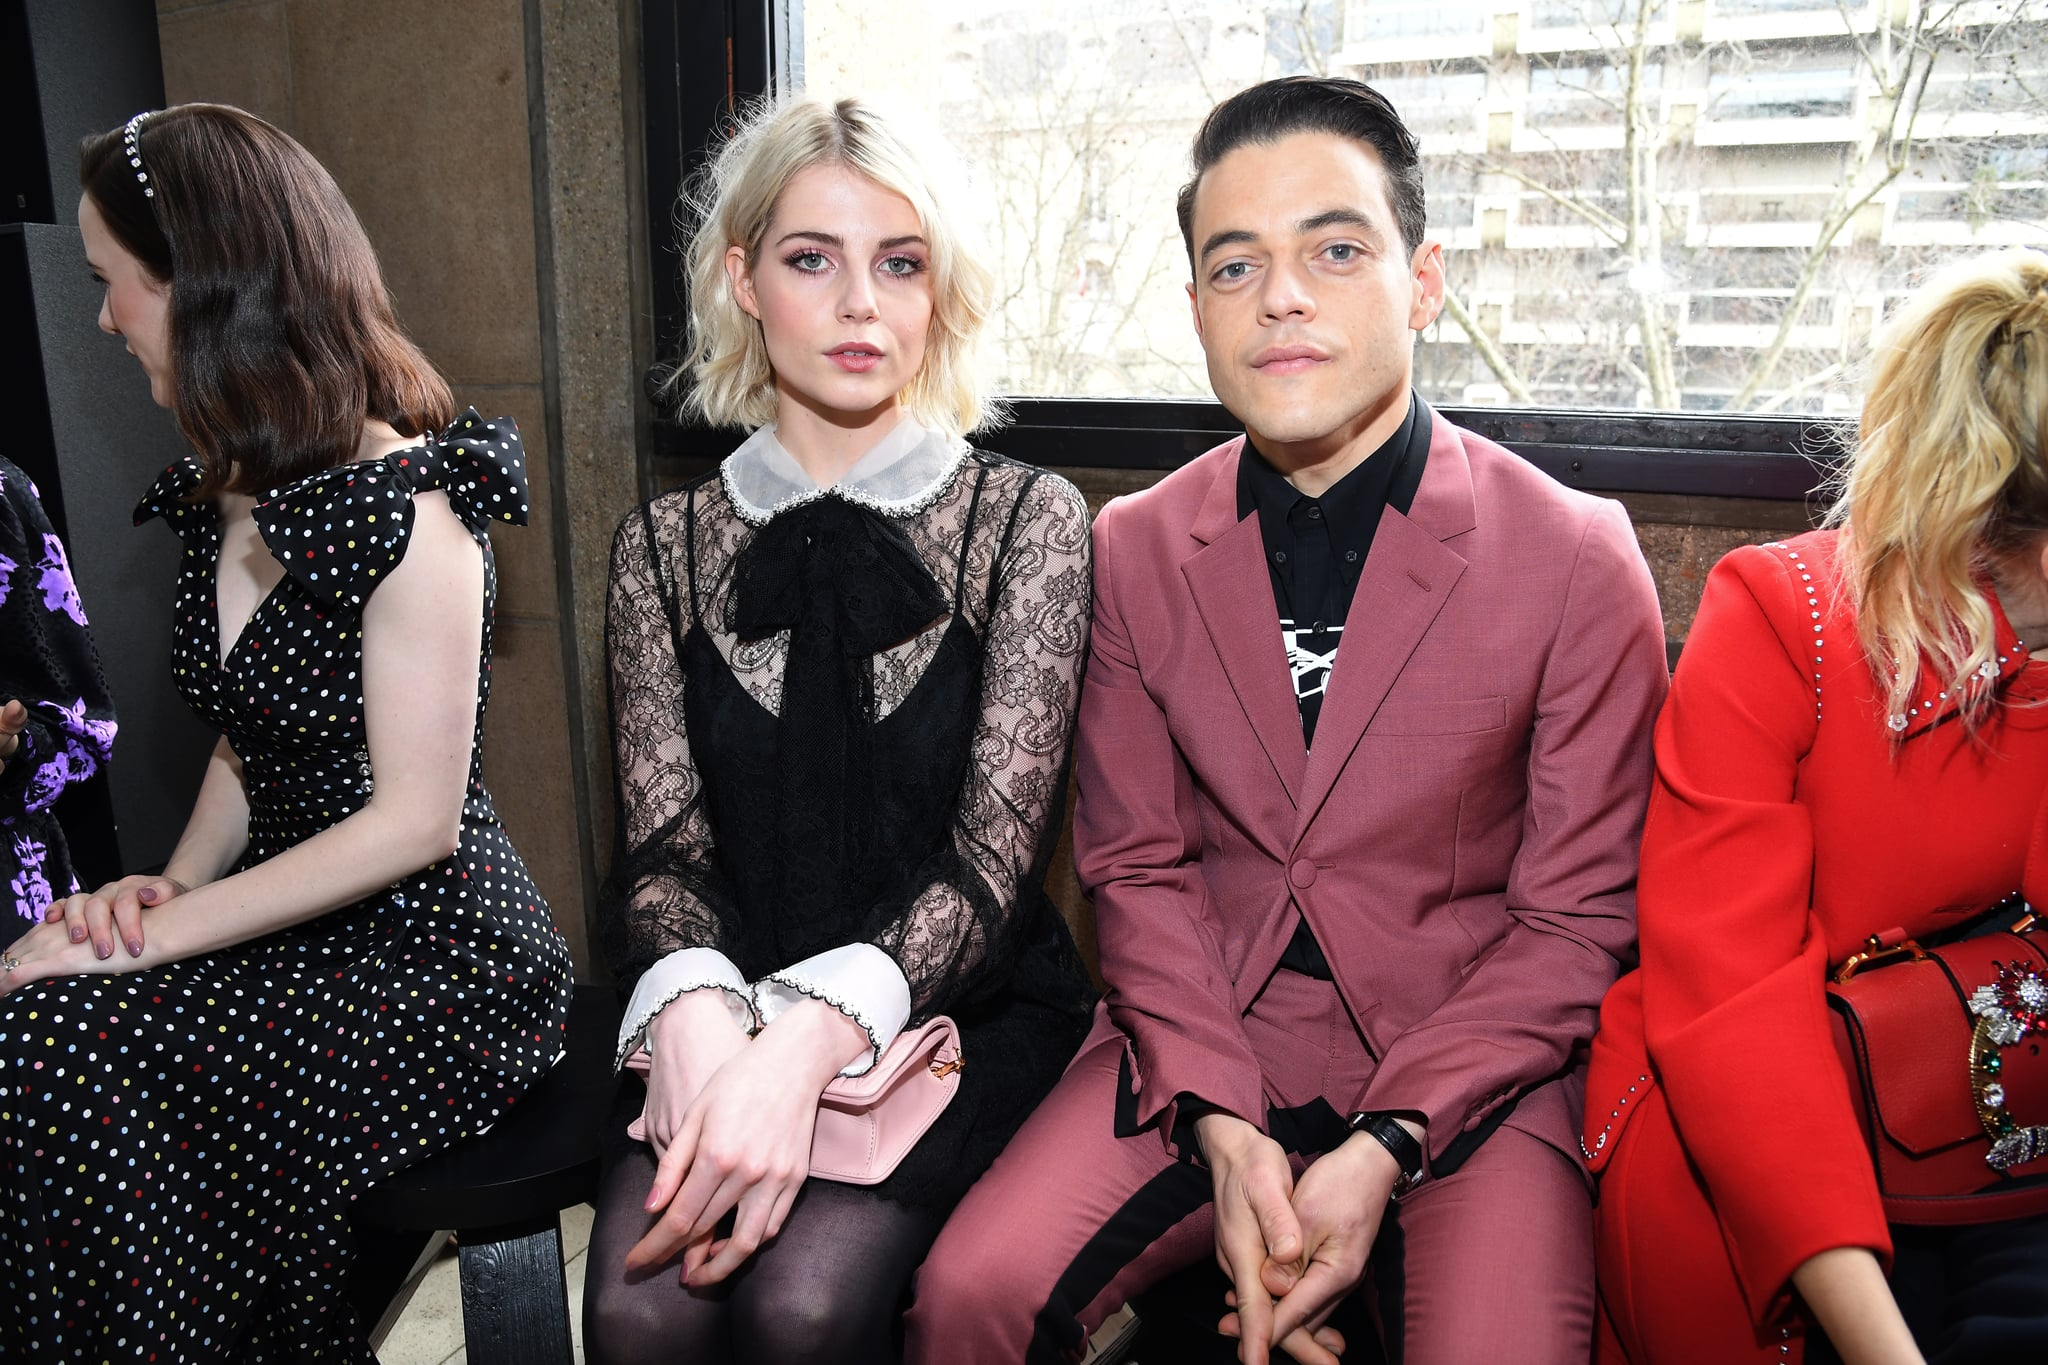 PARIS, FRANCE - MARCH 06:  Rami Malek and Lucy Boynton attend the Miu Miu show as part of the Paris Fashion Week Womenswear Fall/Winter 2018/2019 on March 6, 2018 in Paris, France.  (Photo by Pascal Le Segretain/Getty Images)